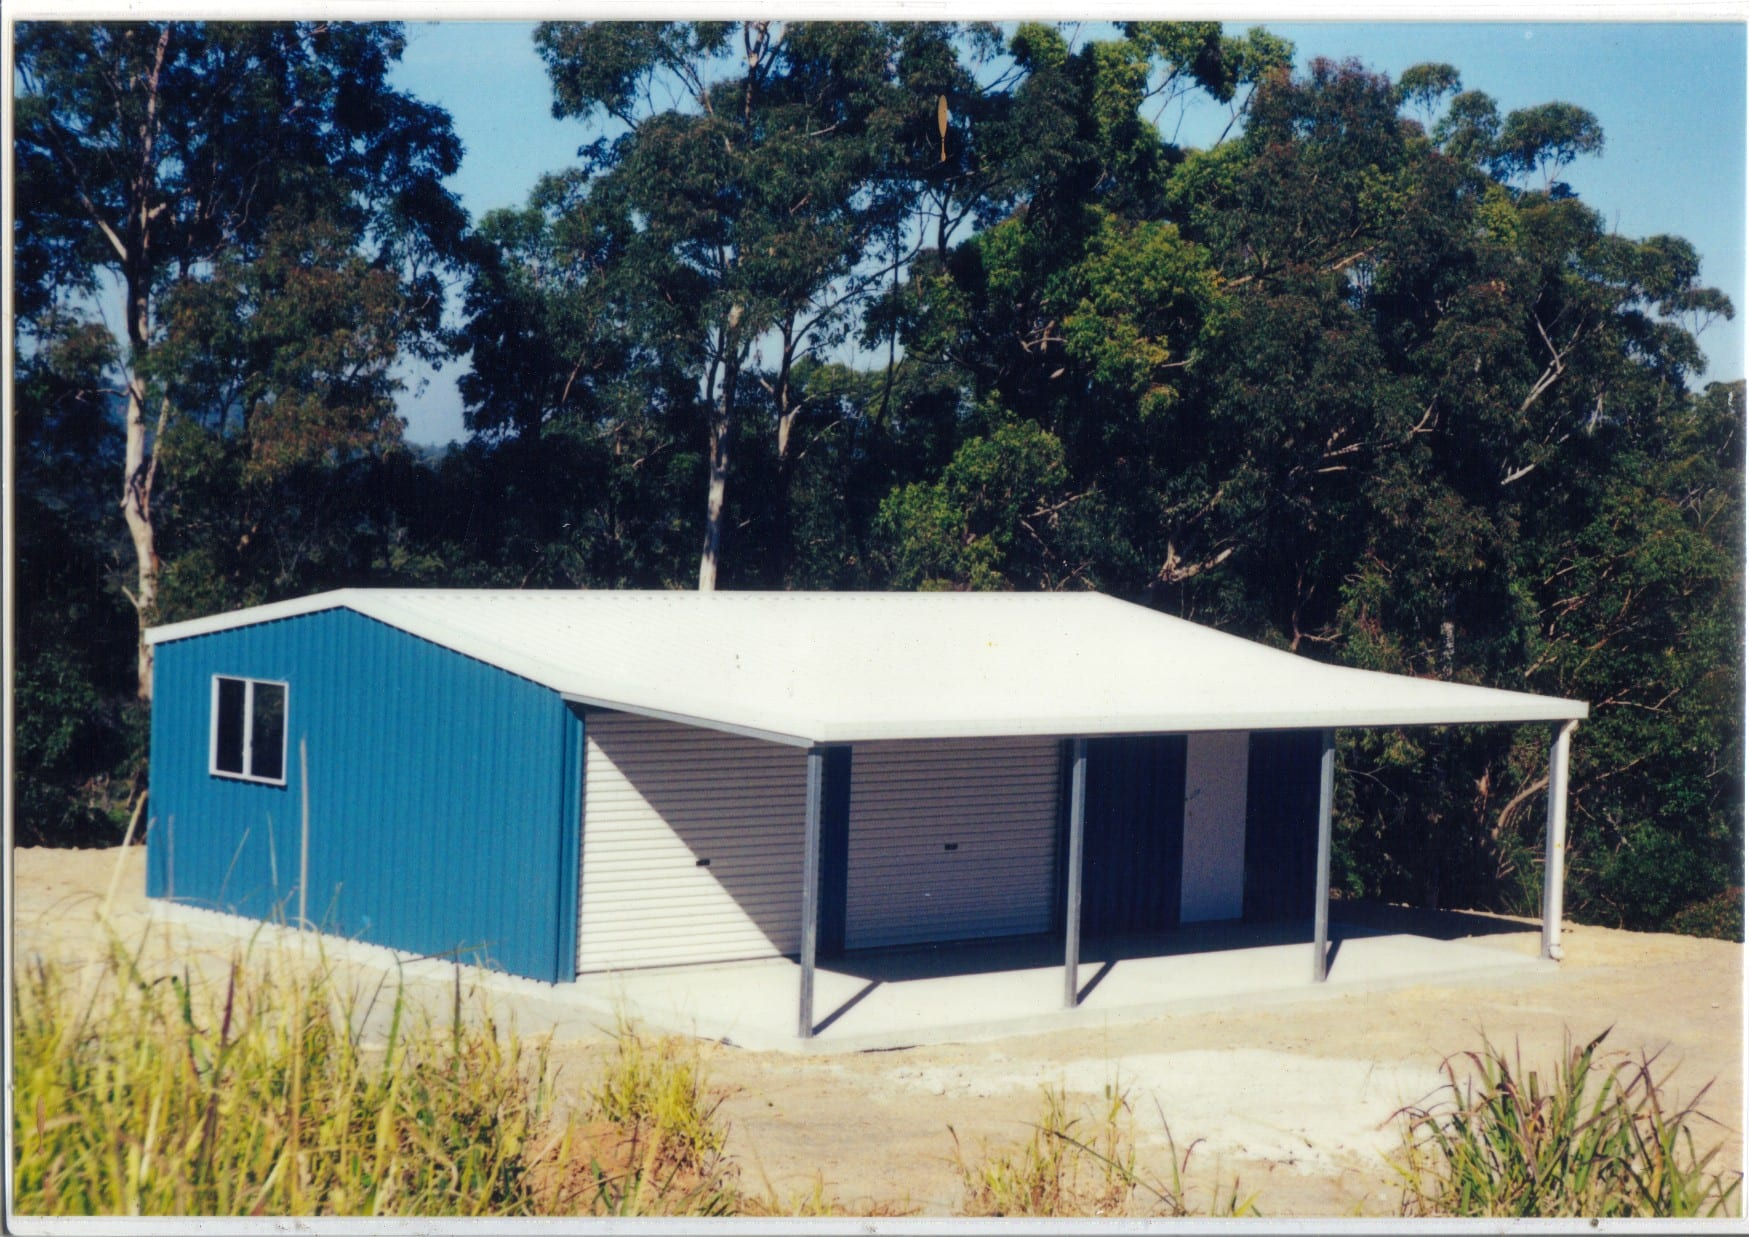 Gable blue and white 2xrd with owning